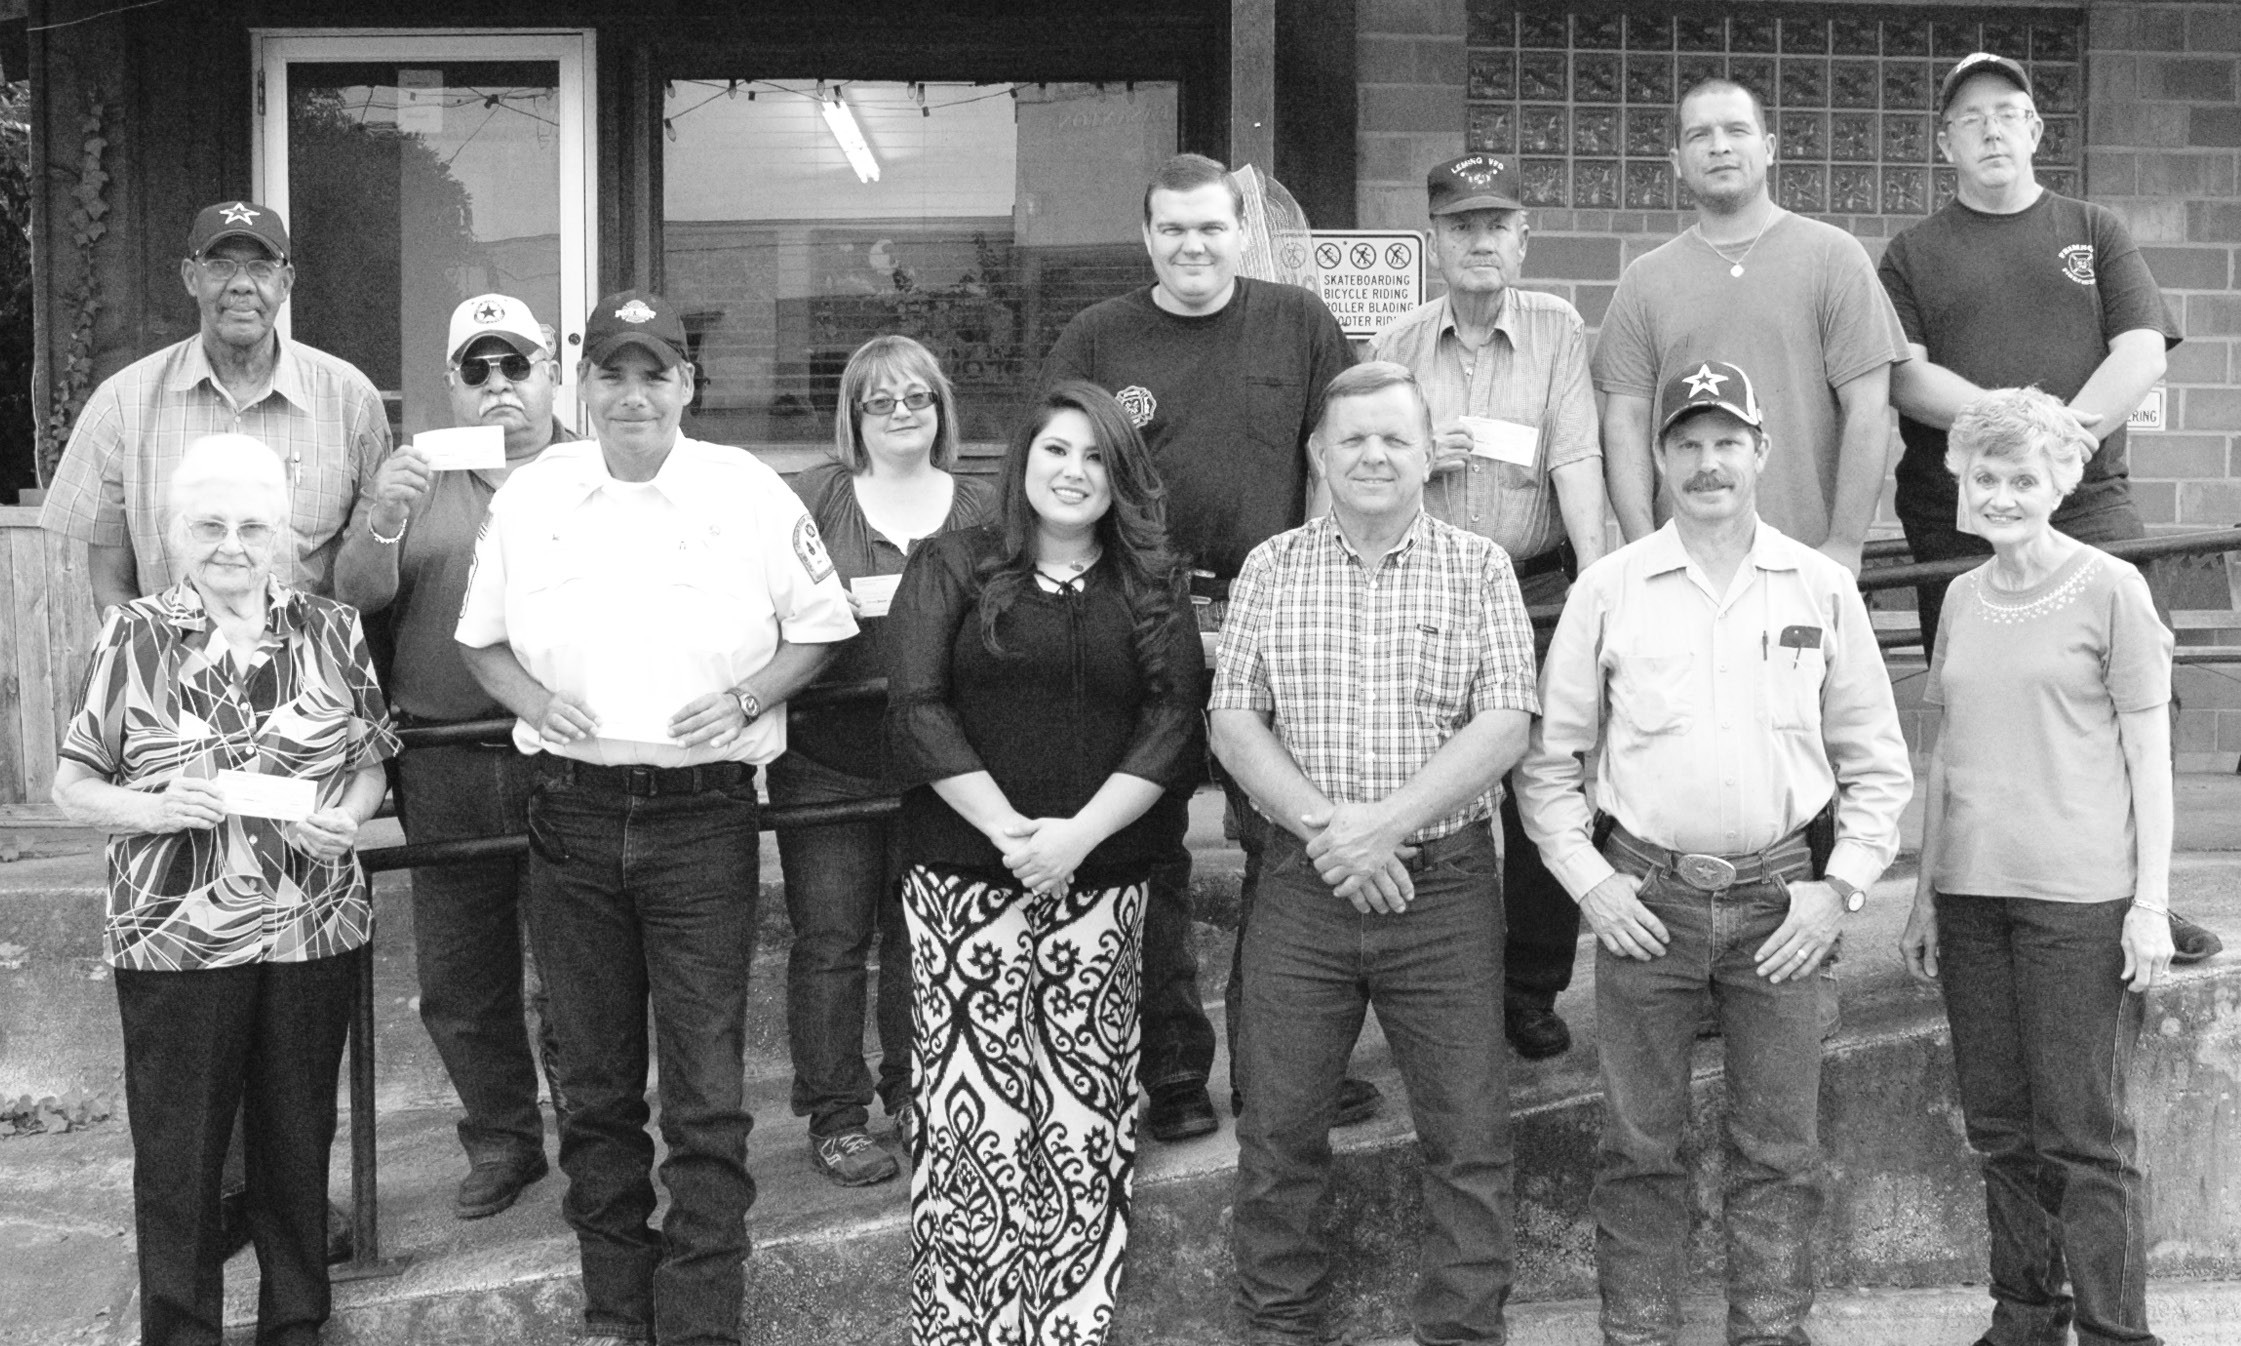 """RVOS Lodge 127 officers presented checks to various non-profits in Atascosa County. Left to right, back row: Rev. Junior Jones (Director Atascosa County Christian Assistance Ministry -CAM); Fire Chief Martin Llamas, Jr. (Campbellton """"Paisano"""" VFD); Jackie Jerkins (Treasurer Christine VFD); Jay Fojtik (Assistant Chief Jourdanton VFD); Juan R. Rodriguez (President Leming VFD); Junior Bosquez (1st. Assistant Chief Pleasanton VFD) and David Croft (Fire Chief Primrose VFD). Left to right, front row: Kitty Pesek (Steering Committee for Atascosa County Christmas Elf Project Target (ACCEPT); Rick Flores (President Poteet VFD); Stephanie Reyes (Vice President Rossville VFD); RVOS President Bobby Tymrak, RVOS Vice President John R. Muckleroy and RVOS Secretary Bettie House. Not pictured are RVOS sales agents Janice Favor and Cheryl Henry and representatives from Atascosa County Crime Stoppers, Charlotte VFD, Jarret VFD, Lytle VFD and Somerset VFD."""